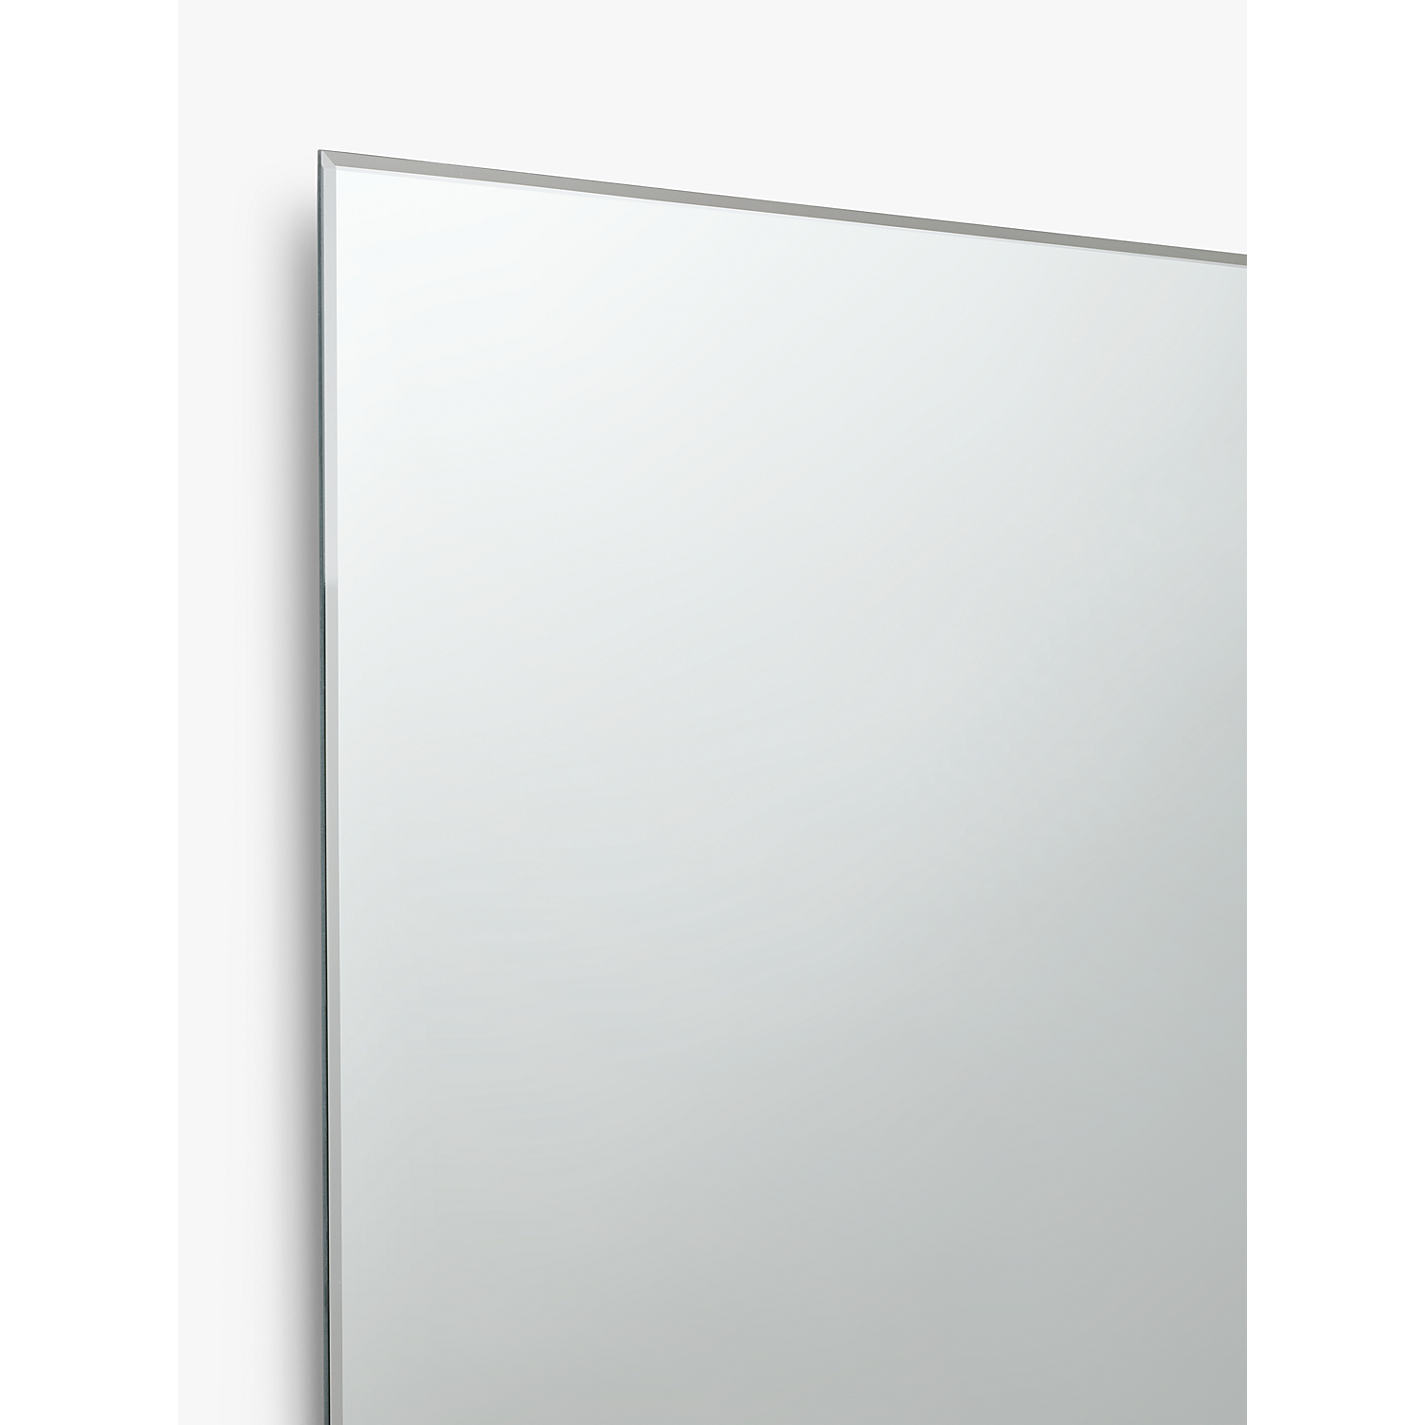 Mirror Bathroom Cabinet Best Home Design 2018